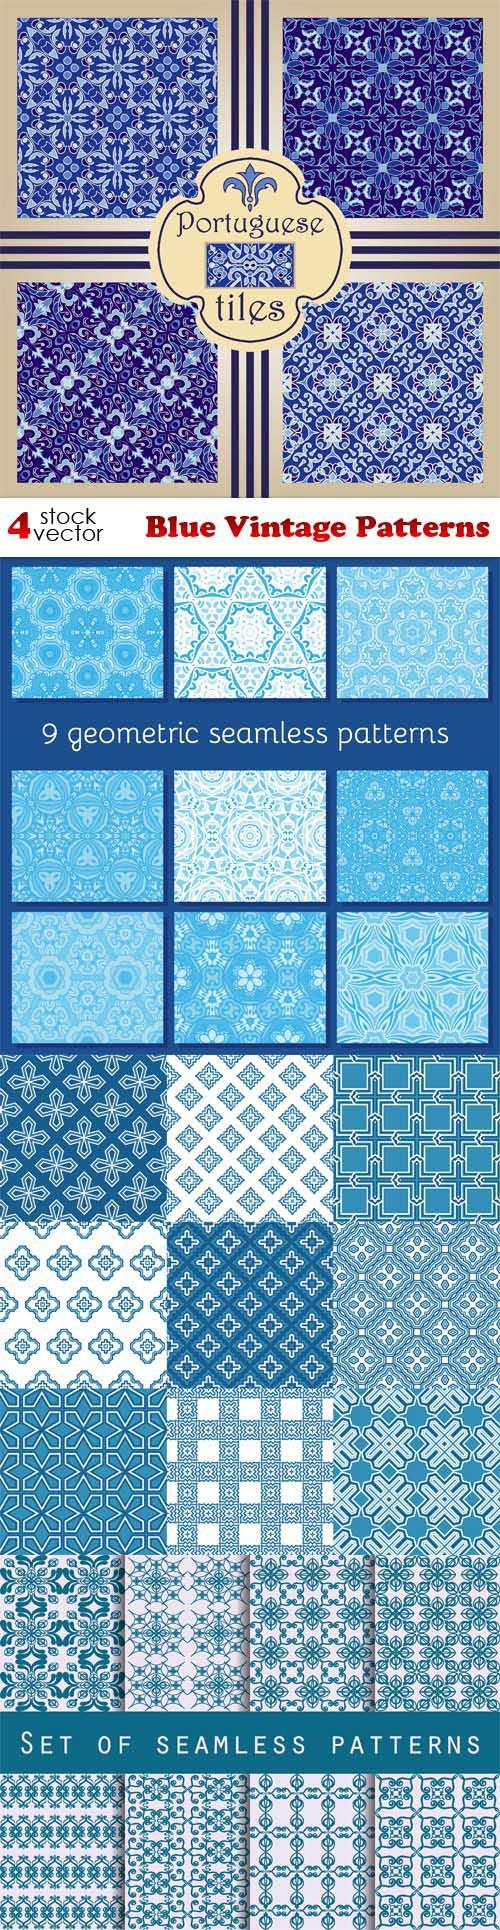 Blue Vintage Patterns ((aitff (9 files)